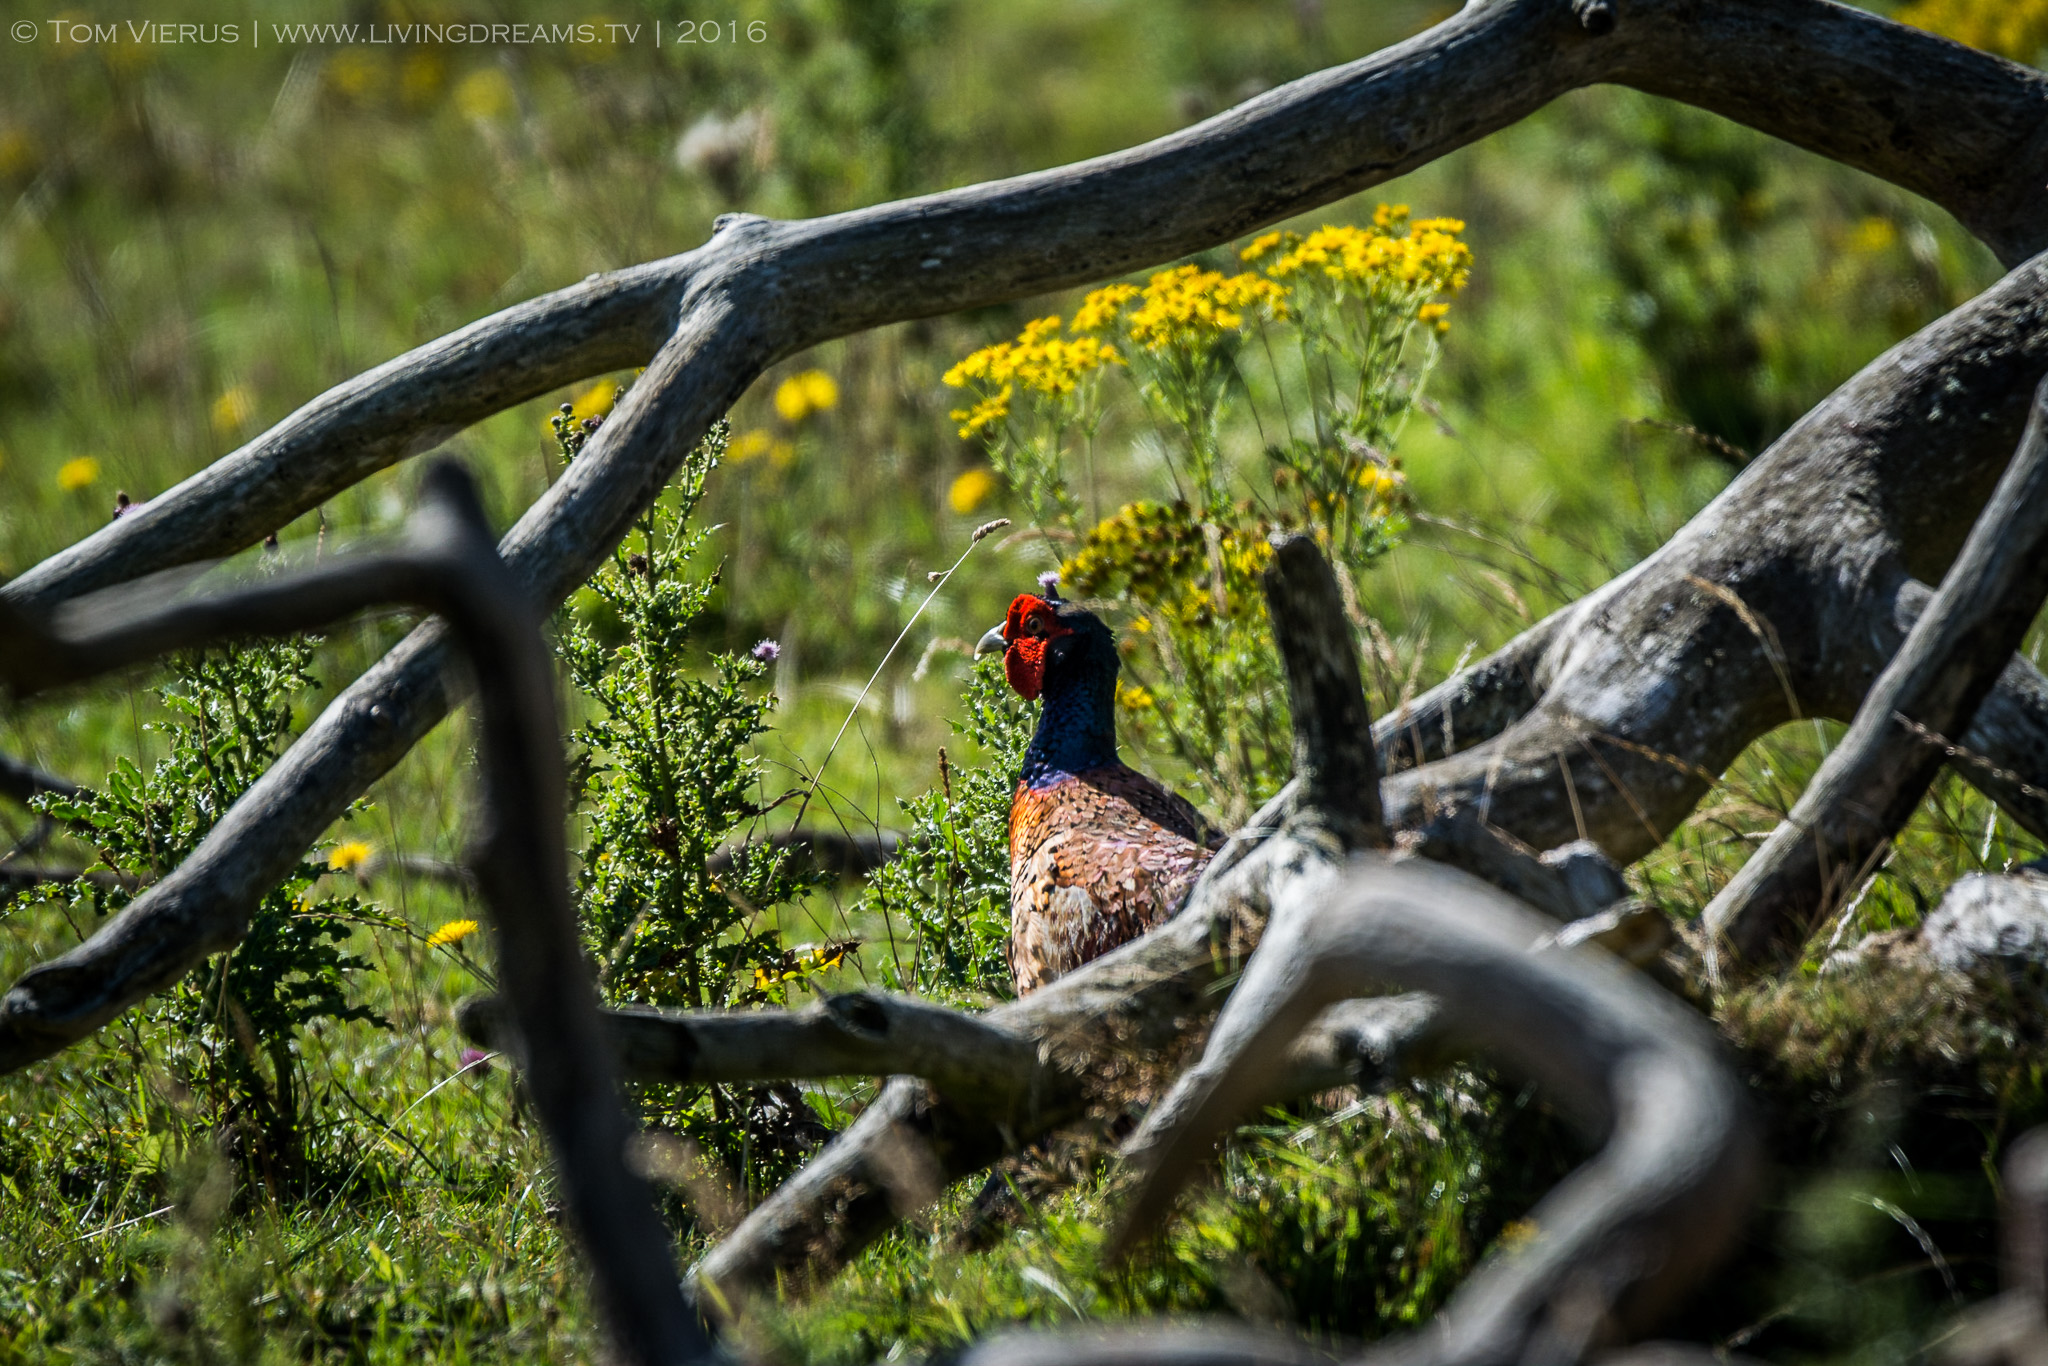 A pheasant hiding behind some branches. Unfortunately, he noticed me quite quickly and then made its way as far away from me as he could. Next time i will be more cautios when approaching them.